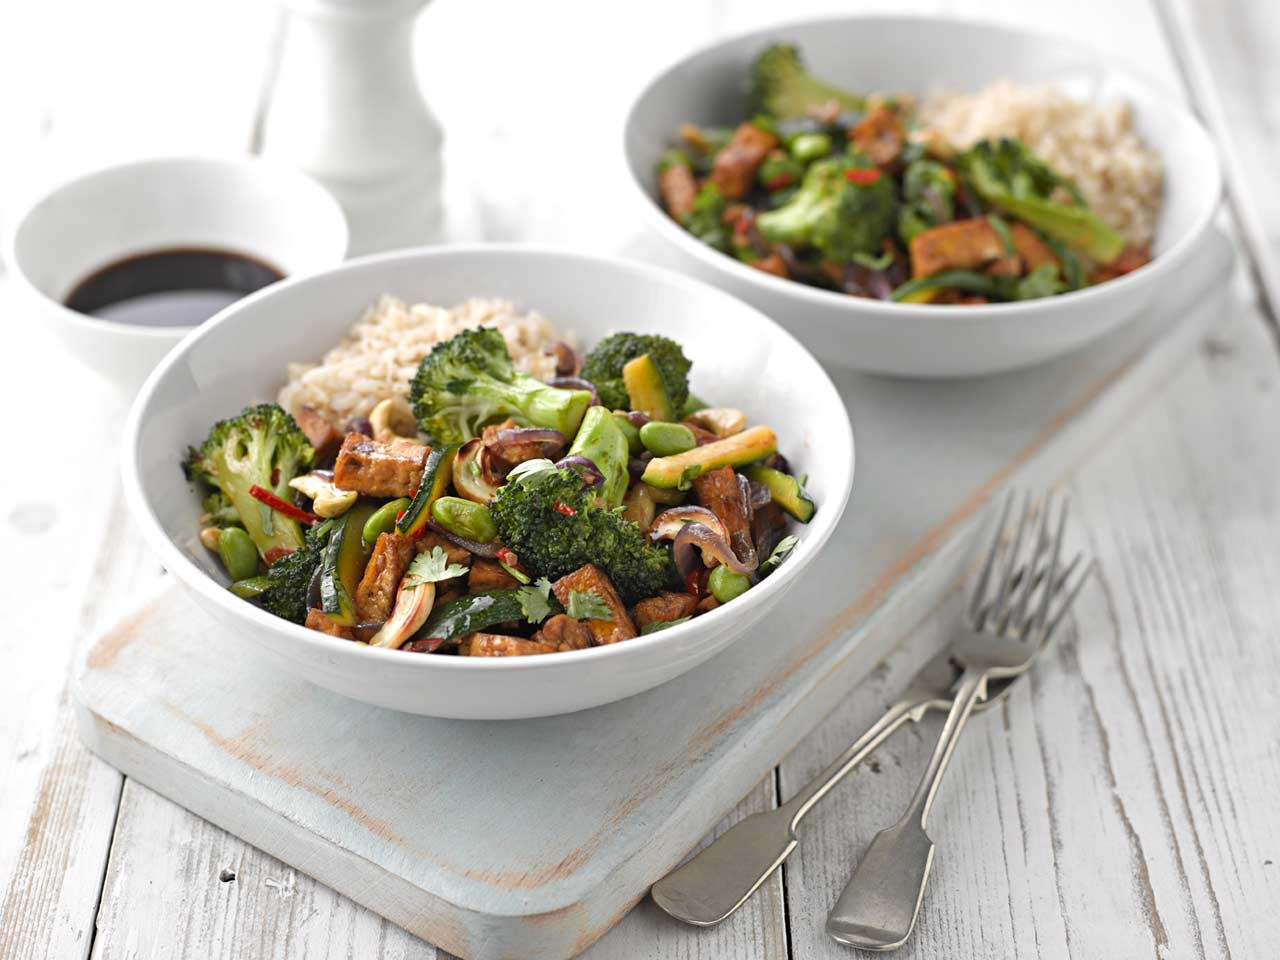 Vegetable stir fry with marinated tofu